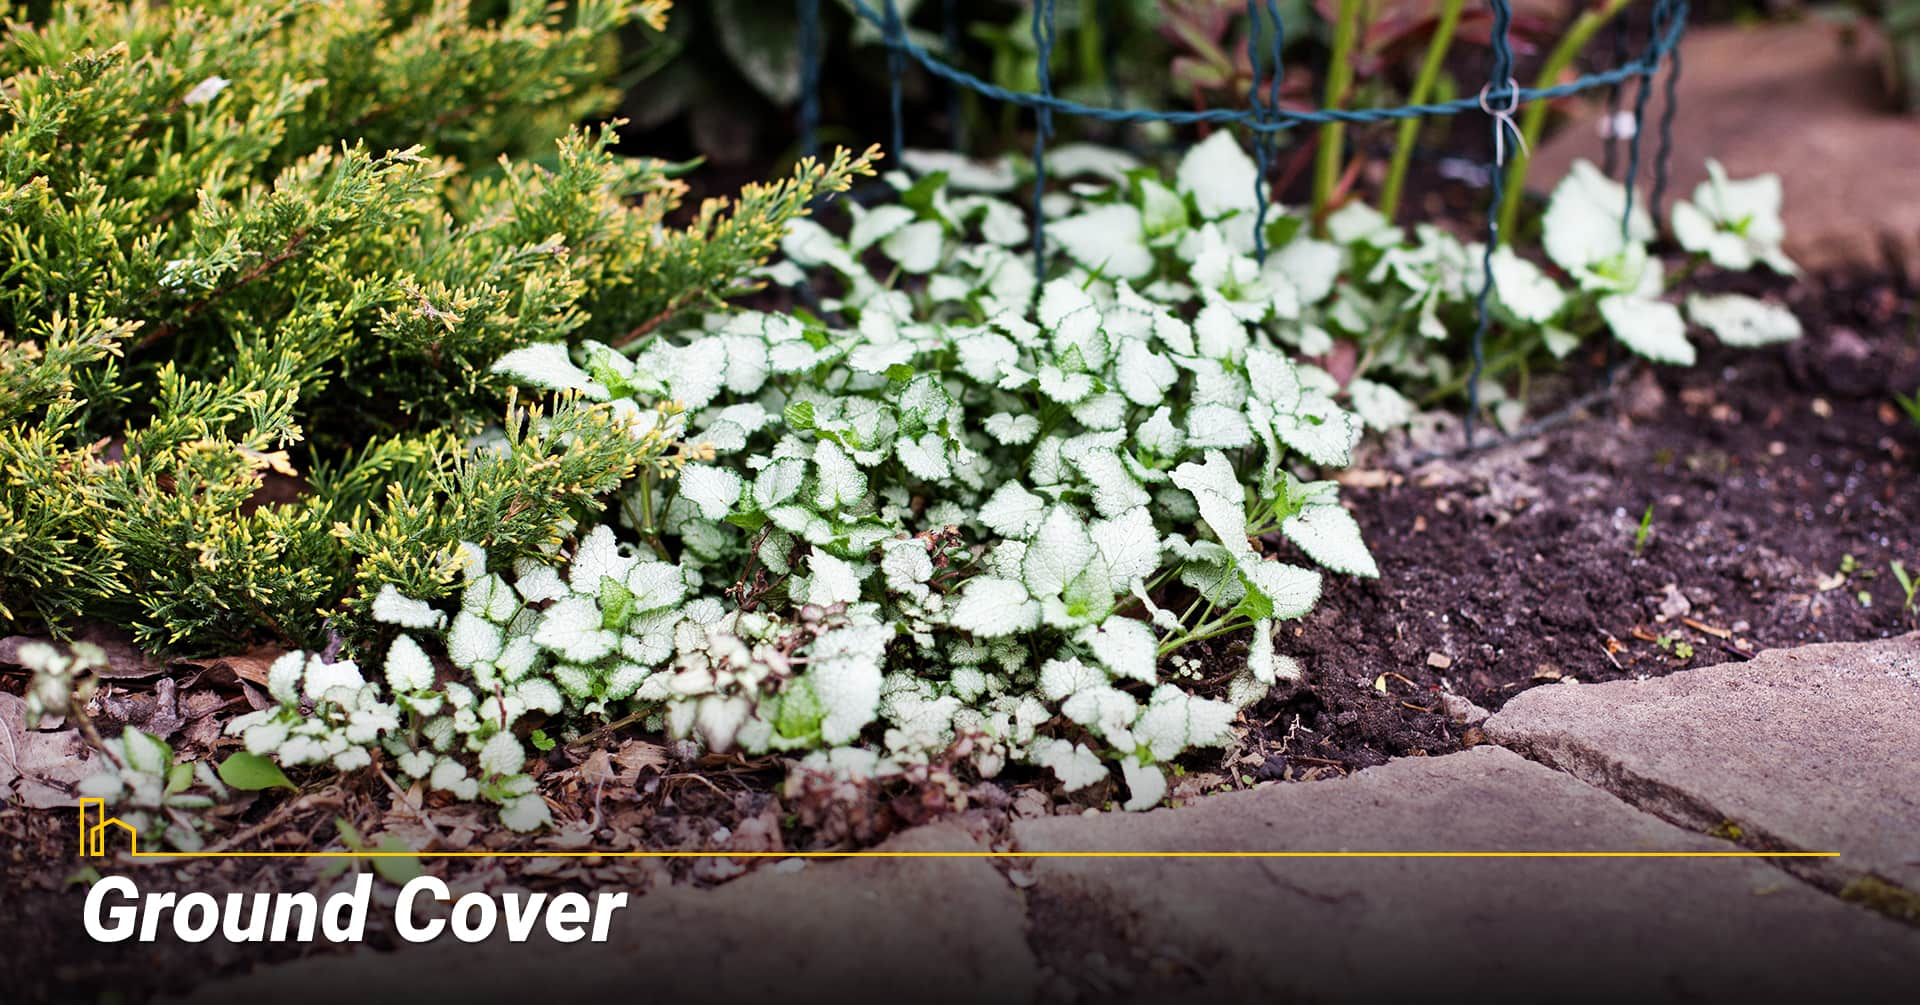 Ground Cover, cover bare ground